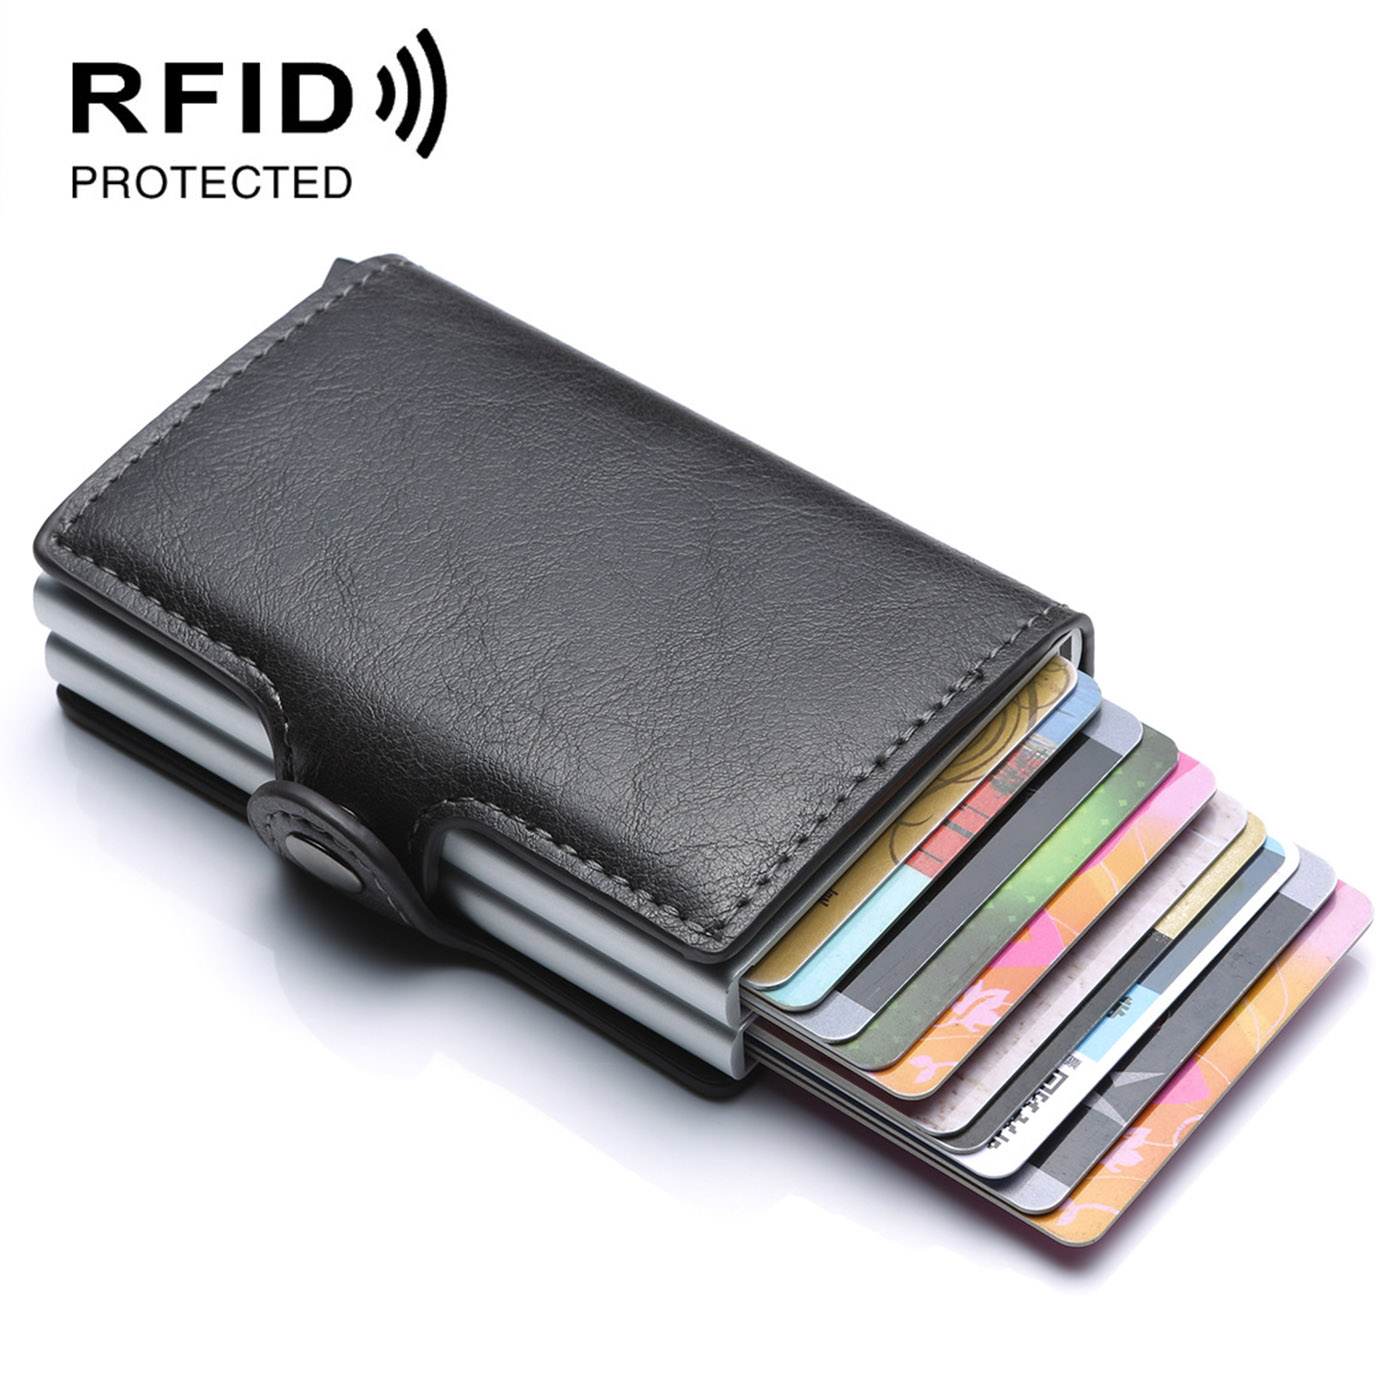 2019 RFID Card Wallet Case ID Metal Credit Card Holders With RFID Vintage Business Double Aluminum Wallet for Credit Card image